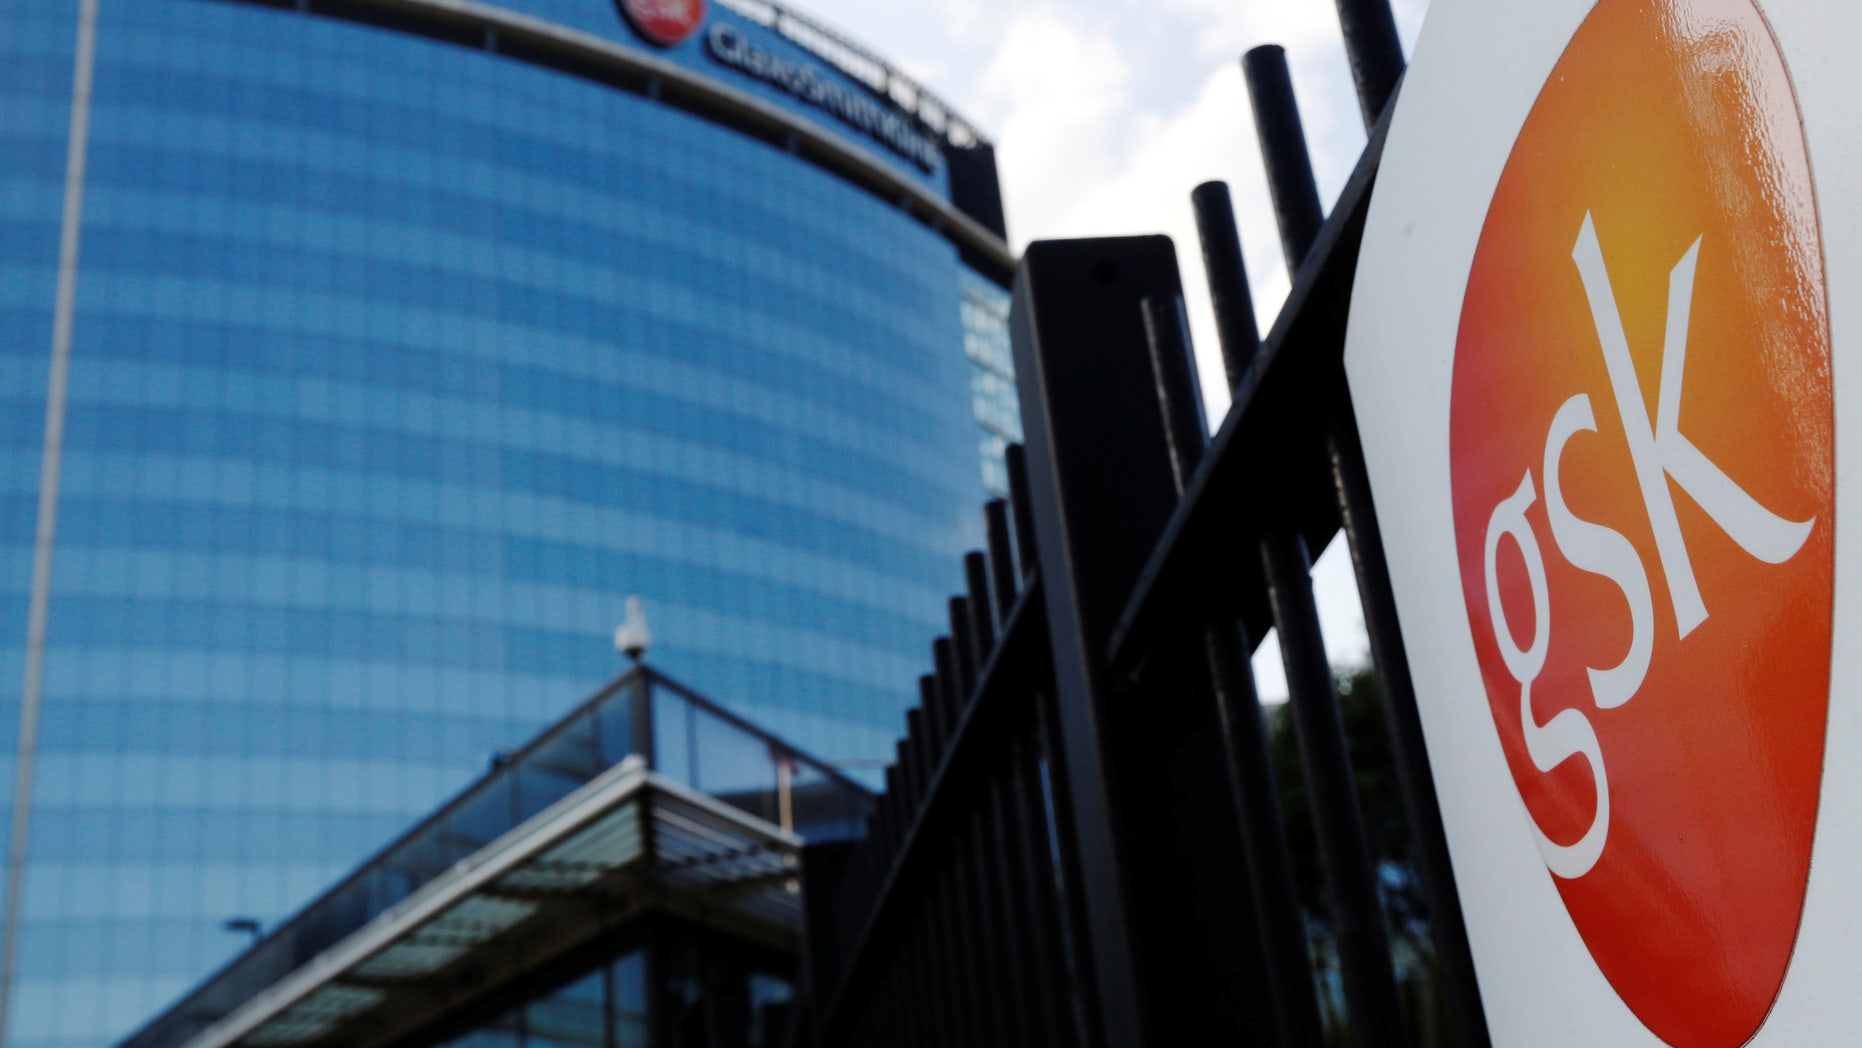 """The GlaxoSmithKline building is pictured in Hounslow, west London June 18, 2013.   REUTERS/Luke MacGregor/File Photo  RTX11R3W   GLOBAL BUSINESS WEEK AHEAD PACKAGE - SEARCH """"BUSINESS WEEK AHEAD JULY 25"""" FOR ALL IMAGES - RTSJGDD"""